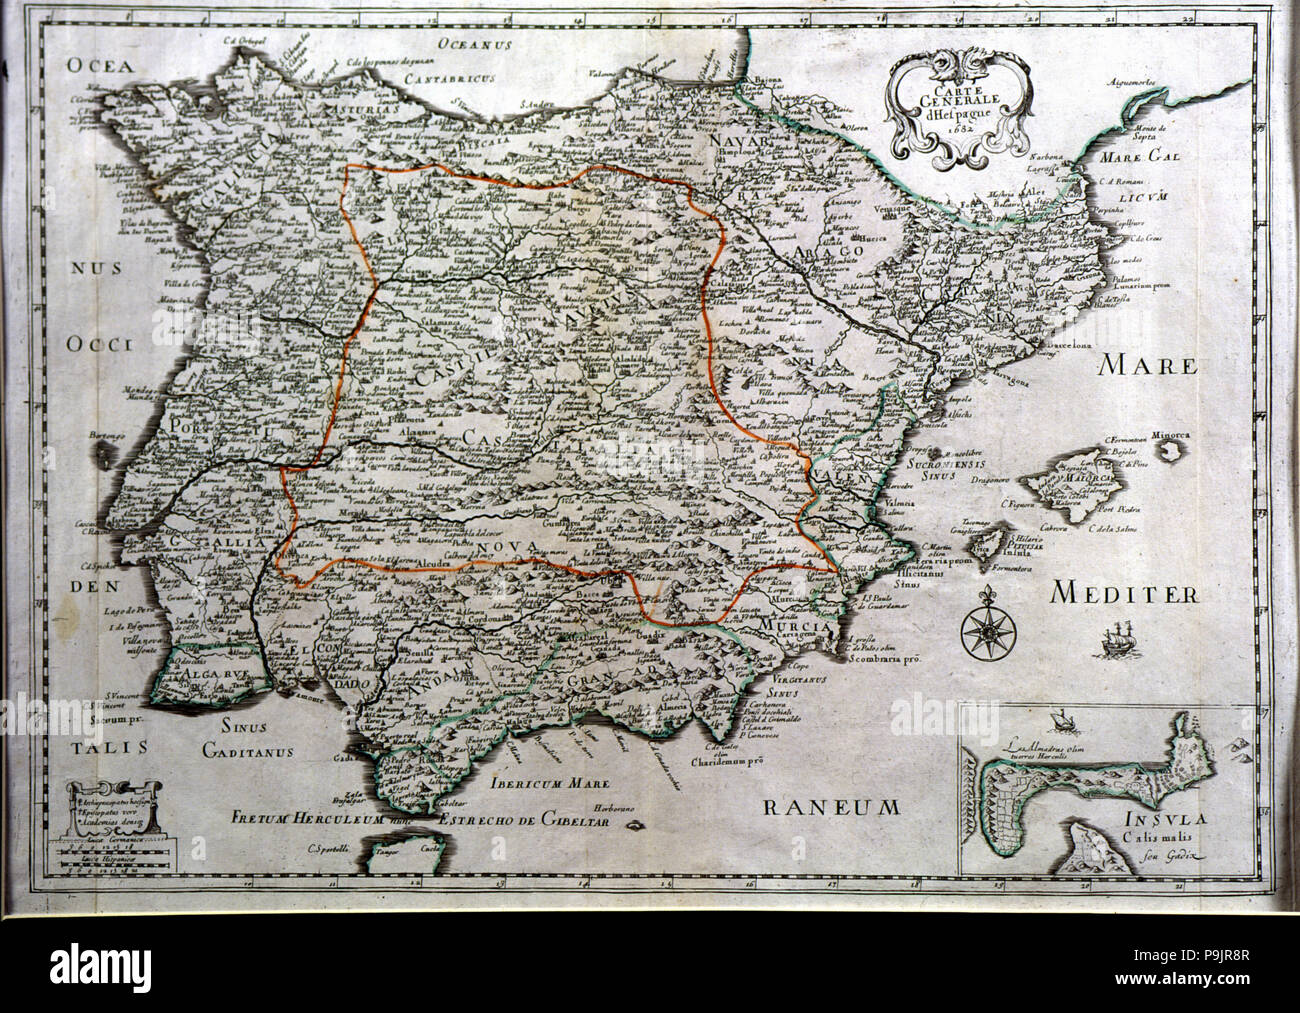 Colored map of Spain, 1682, with the island and tunny fisheries of Cadiz in a box. Stock Photo